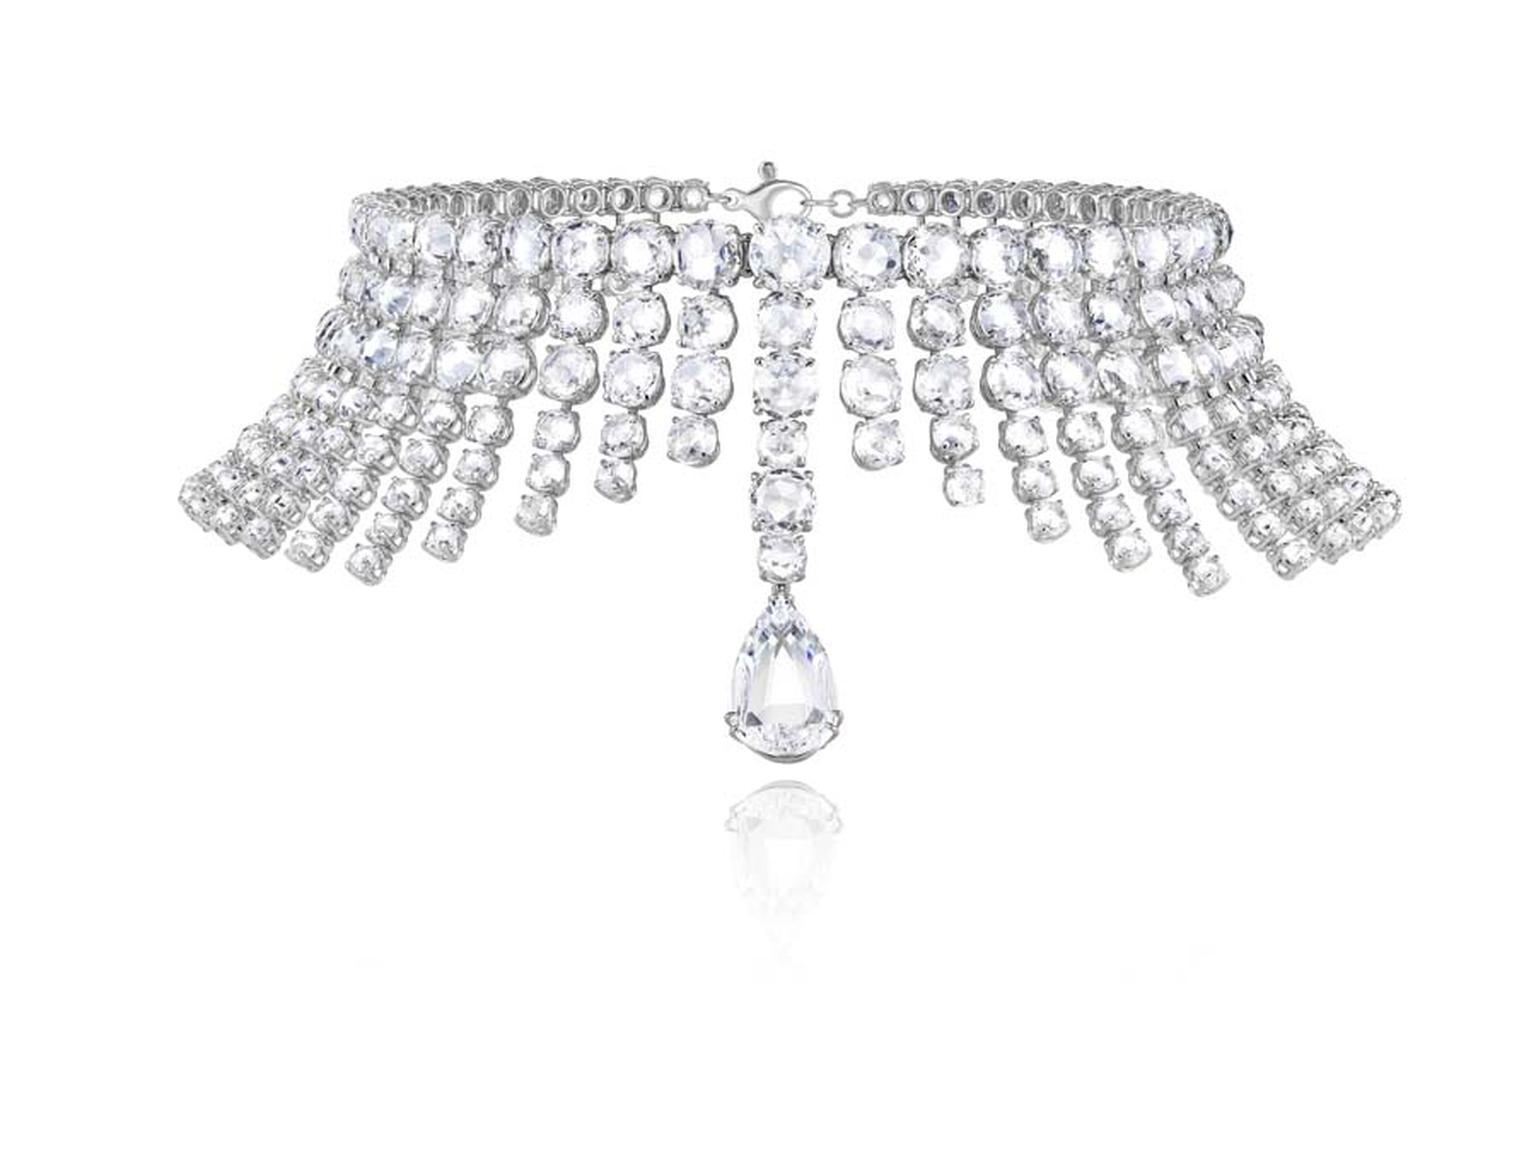 810391-1001 Diamond Necklace from the Red Carpet Collection 2013Chopard.jpg